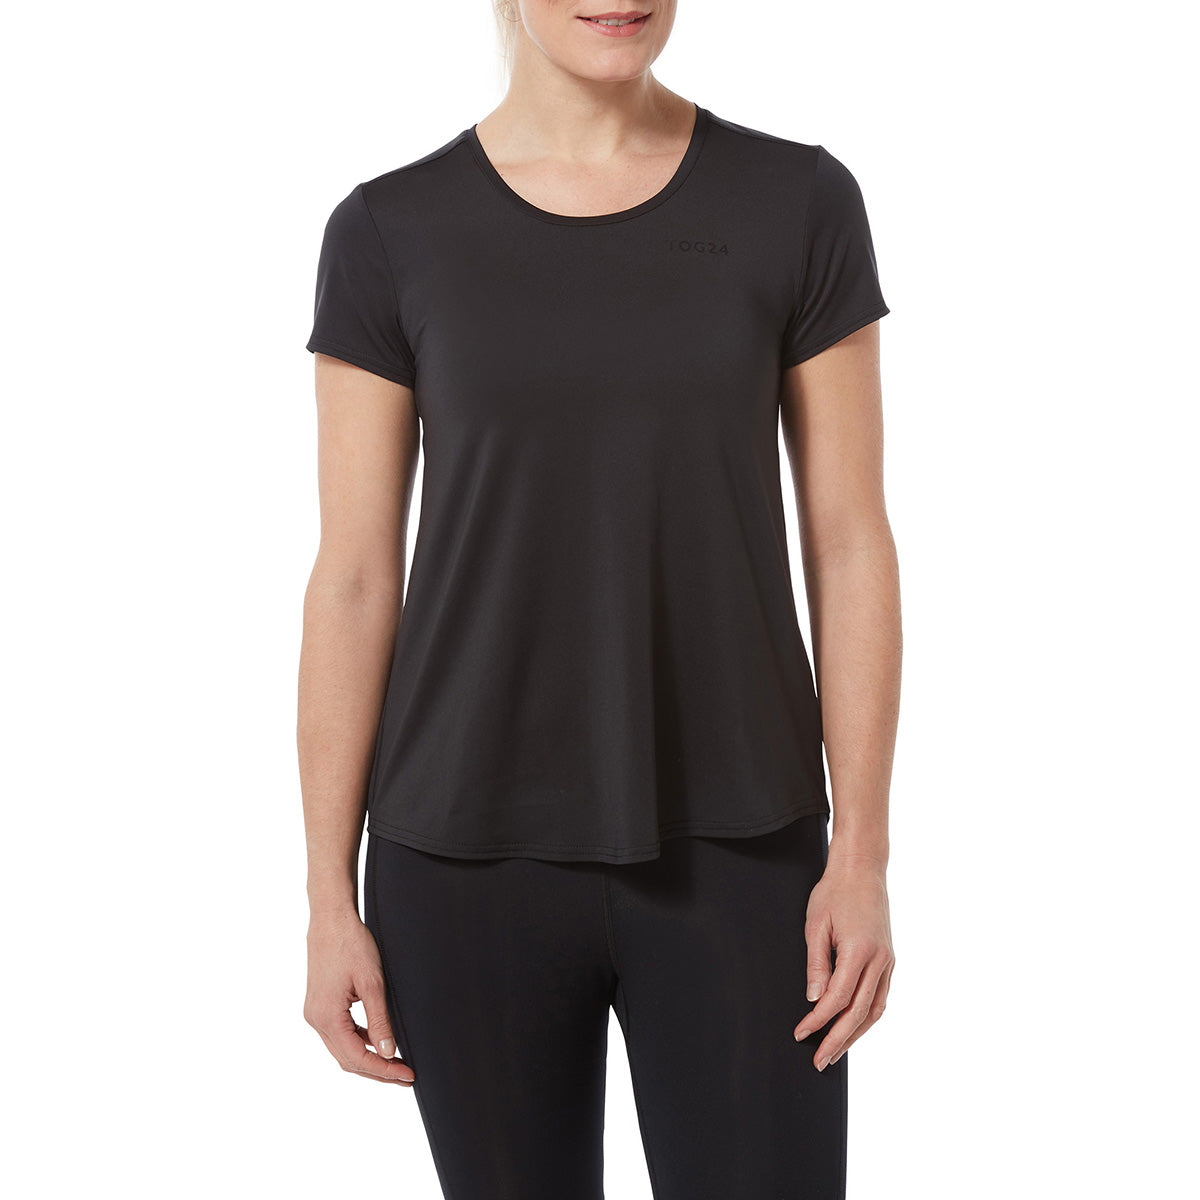 Lawson Womens Performance T-Shirt - Black